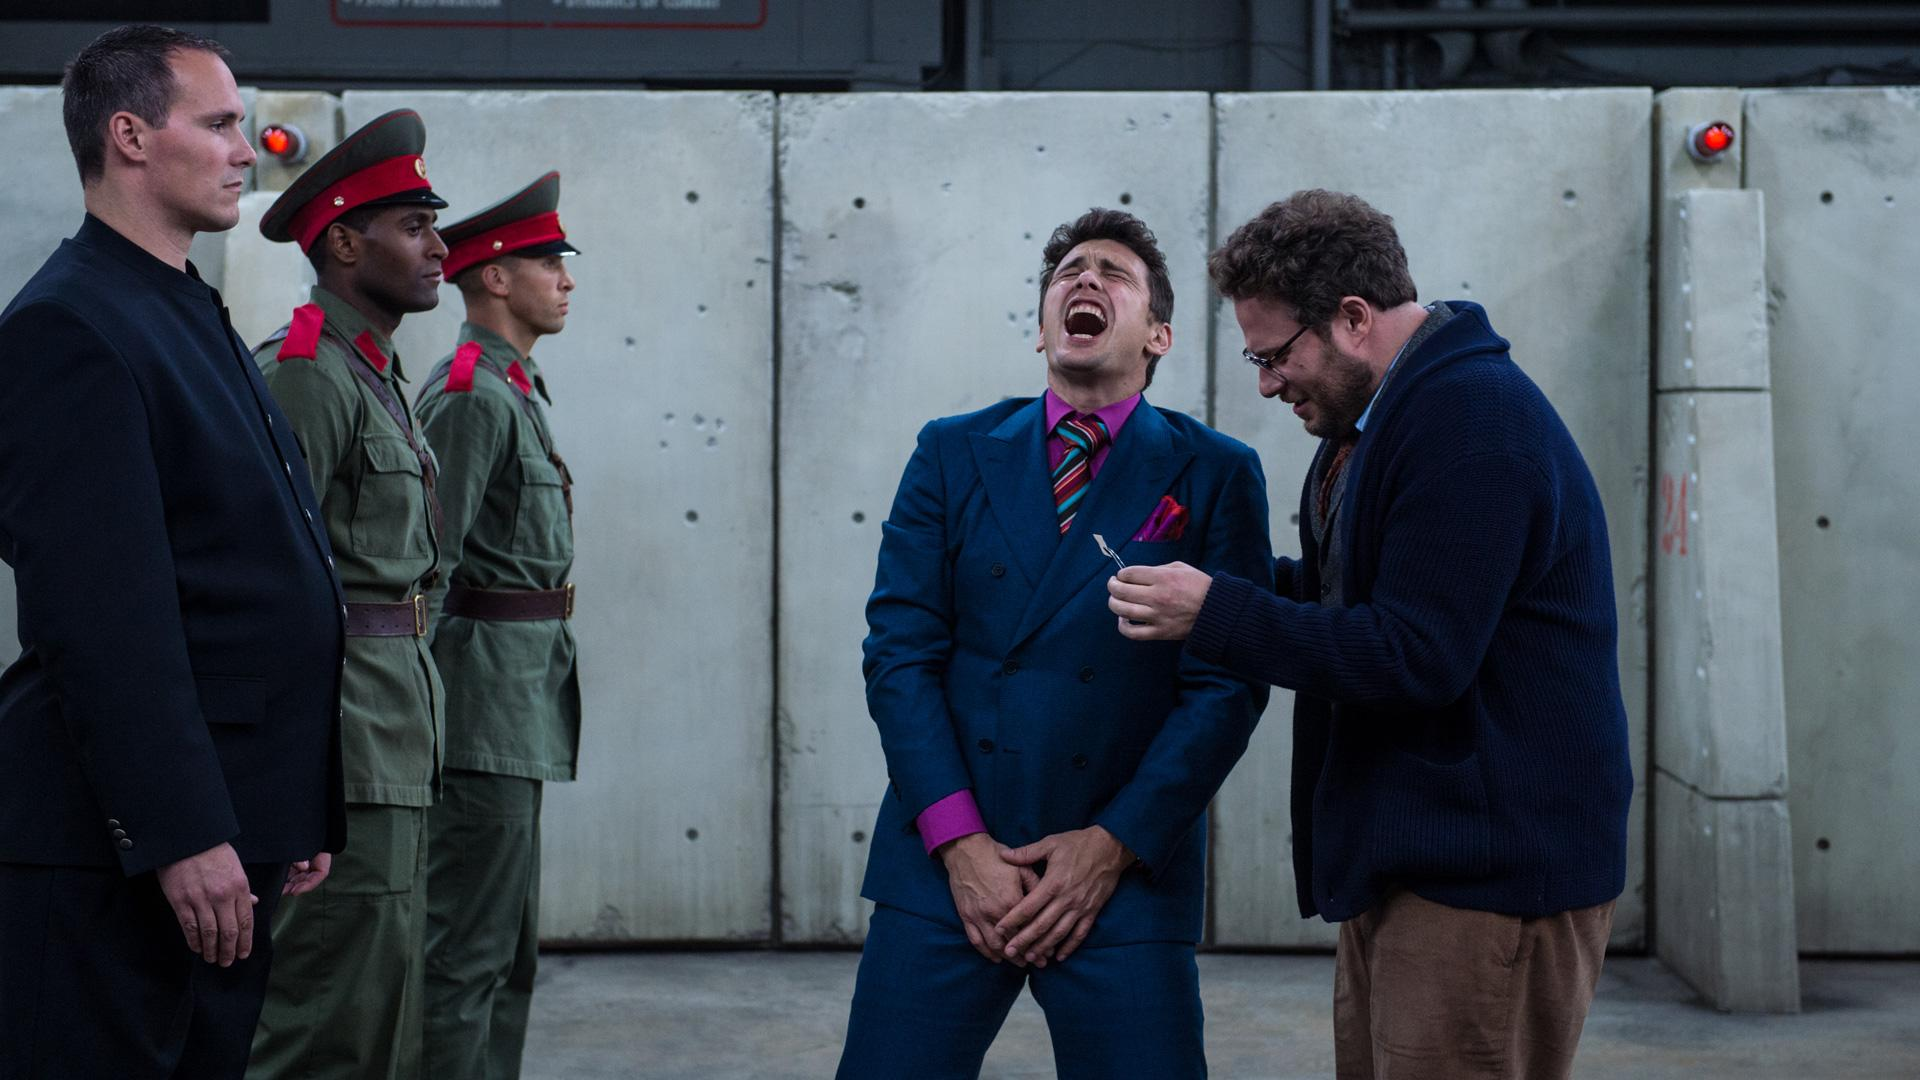 Republicans Urge Theaters to Show 'Interview': 'We Cannot Be Bullied Into Giving Up Freedom'